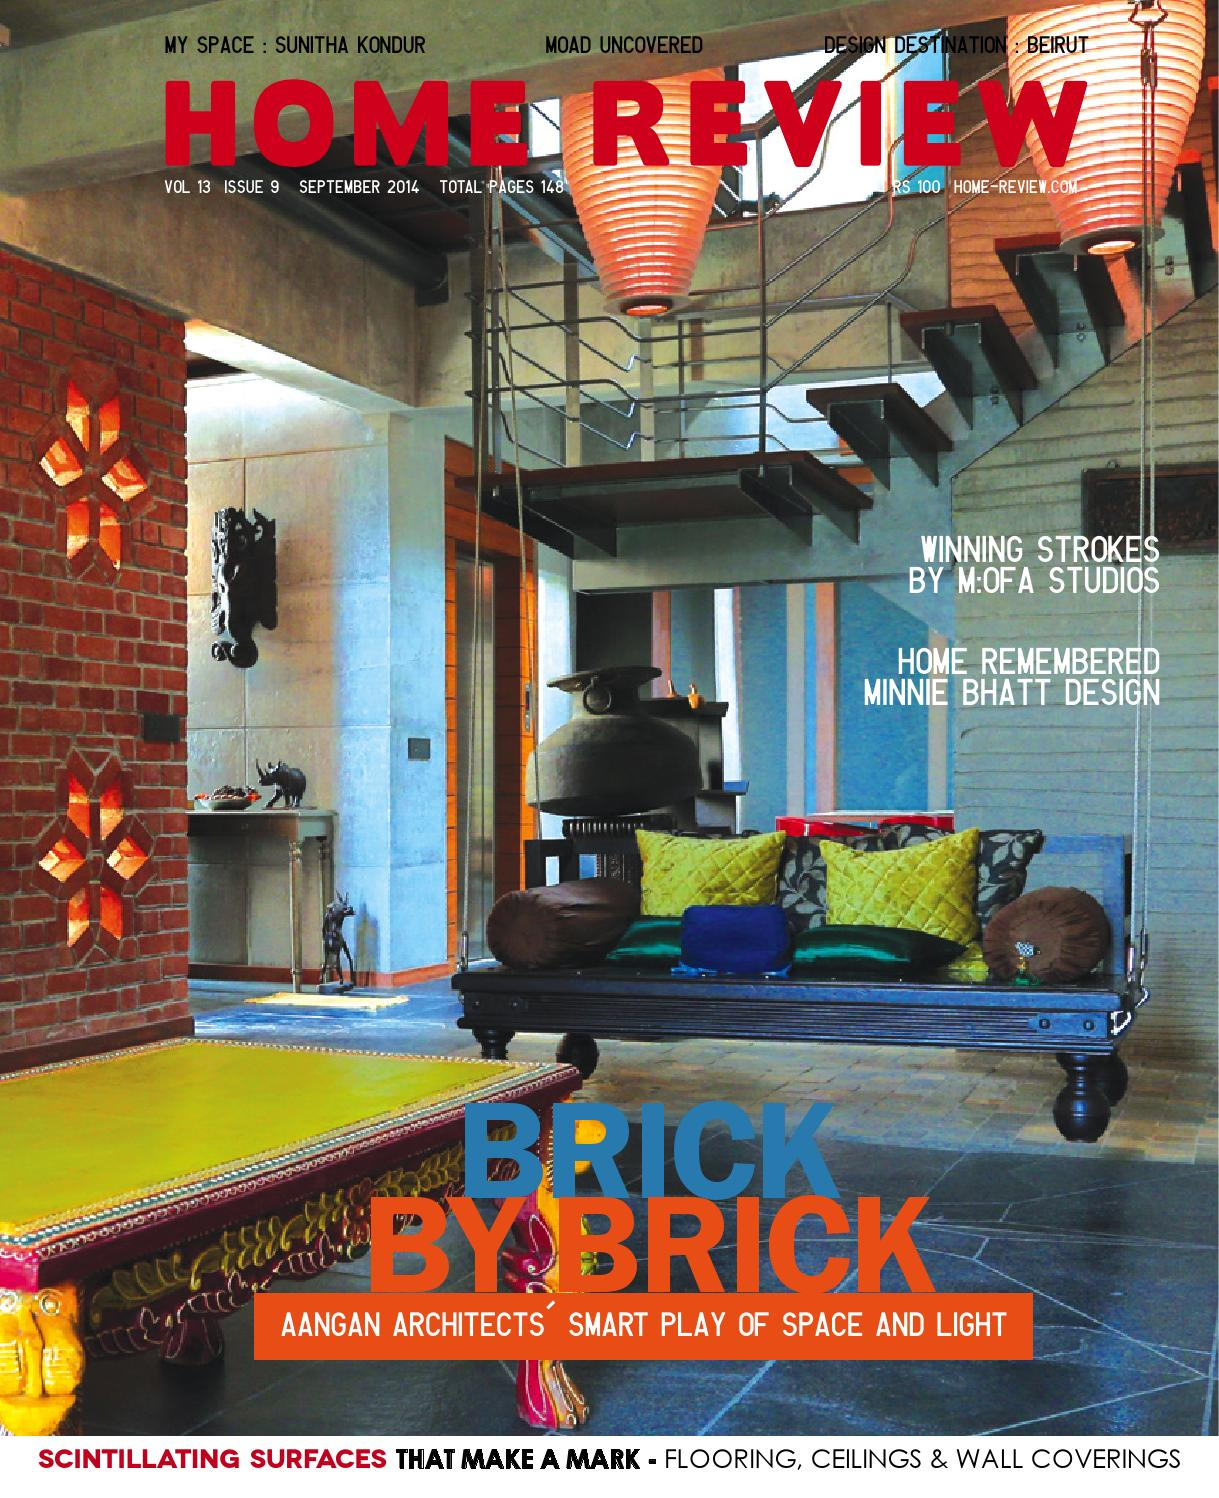 Home review september 2014 by home review issuu for Moad interior designs